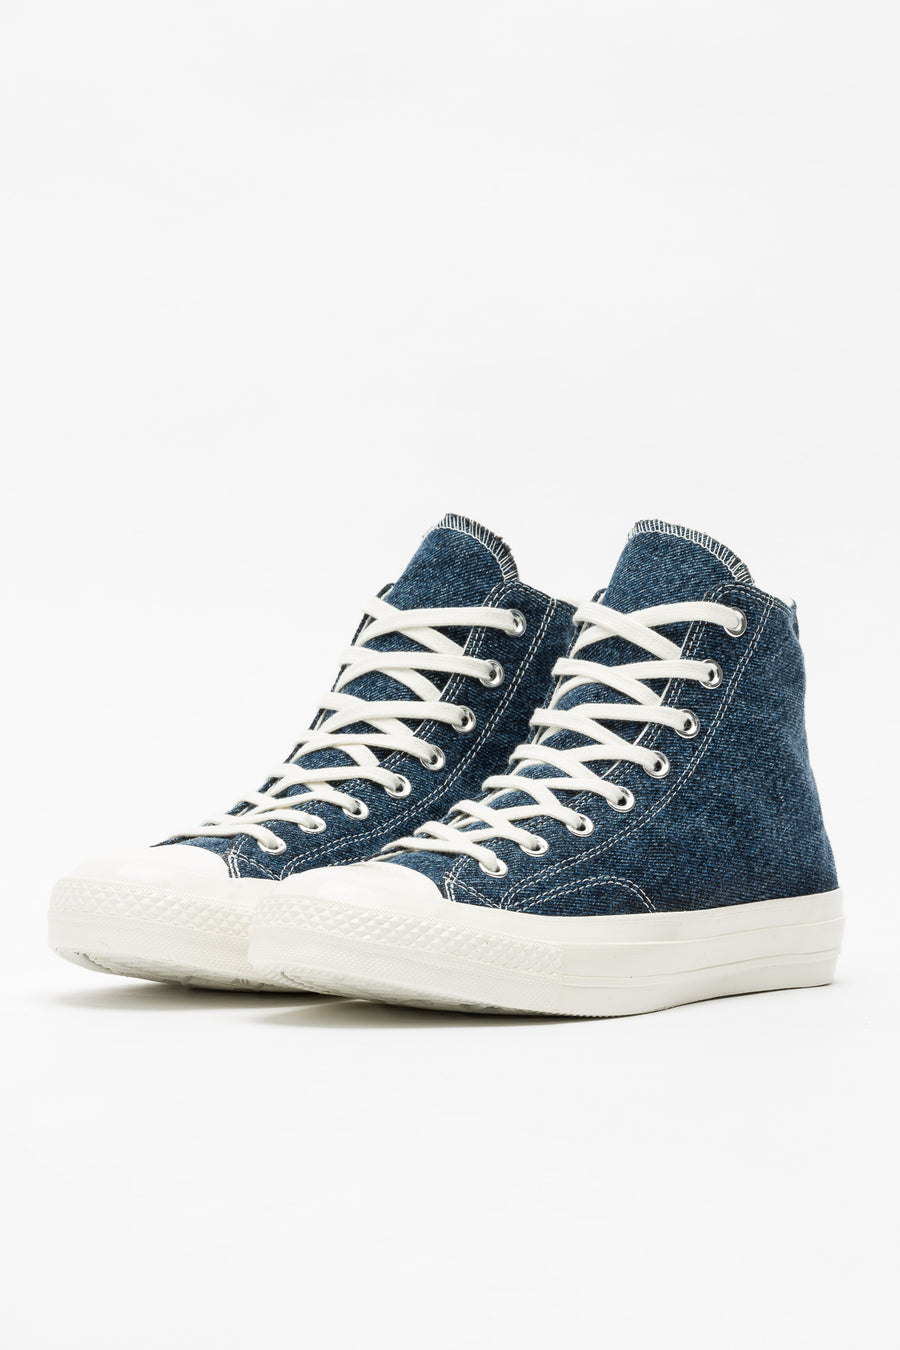 Converse Chuck 70 Hi in Dark Denim - Notre